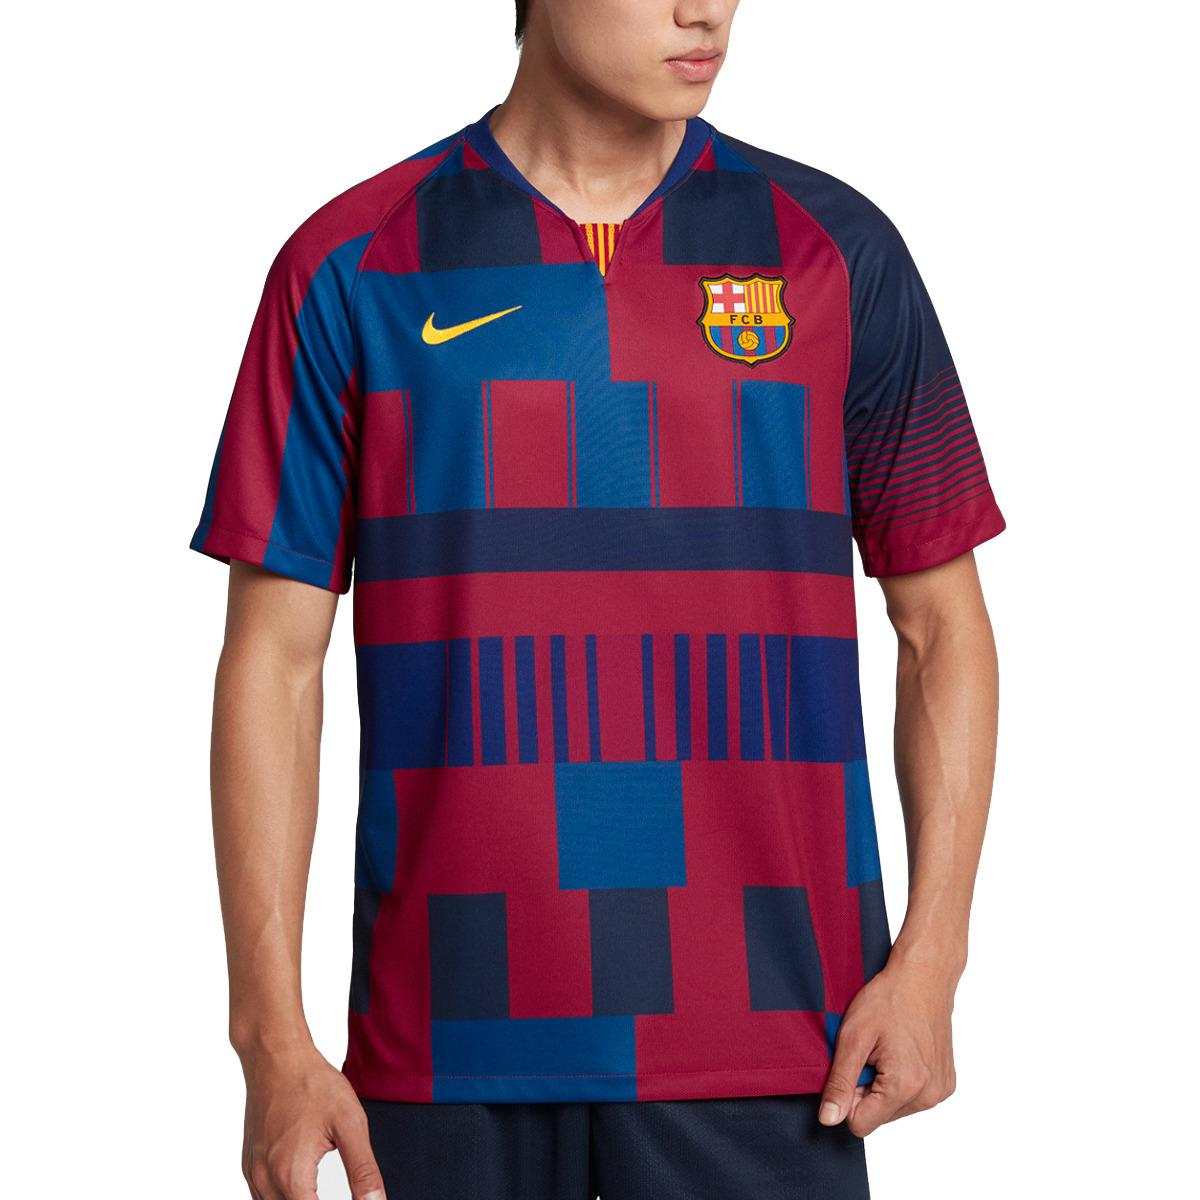 a03d264a8 Nike Fc Barcelona 2018-2019 Breathe Stadium Disrupted 20 Years T ...